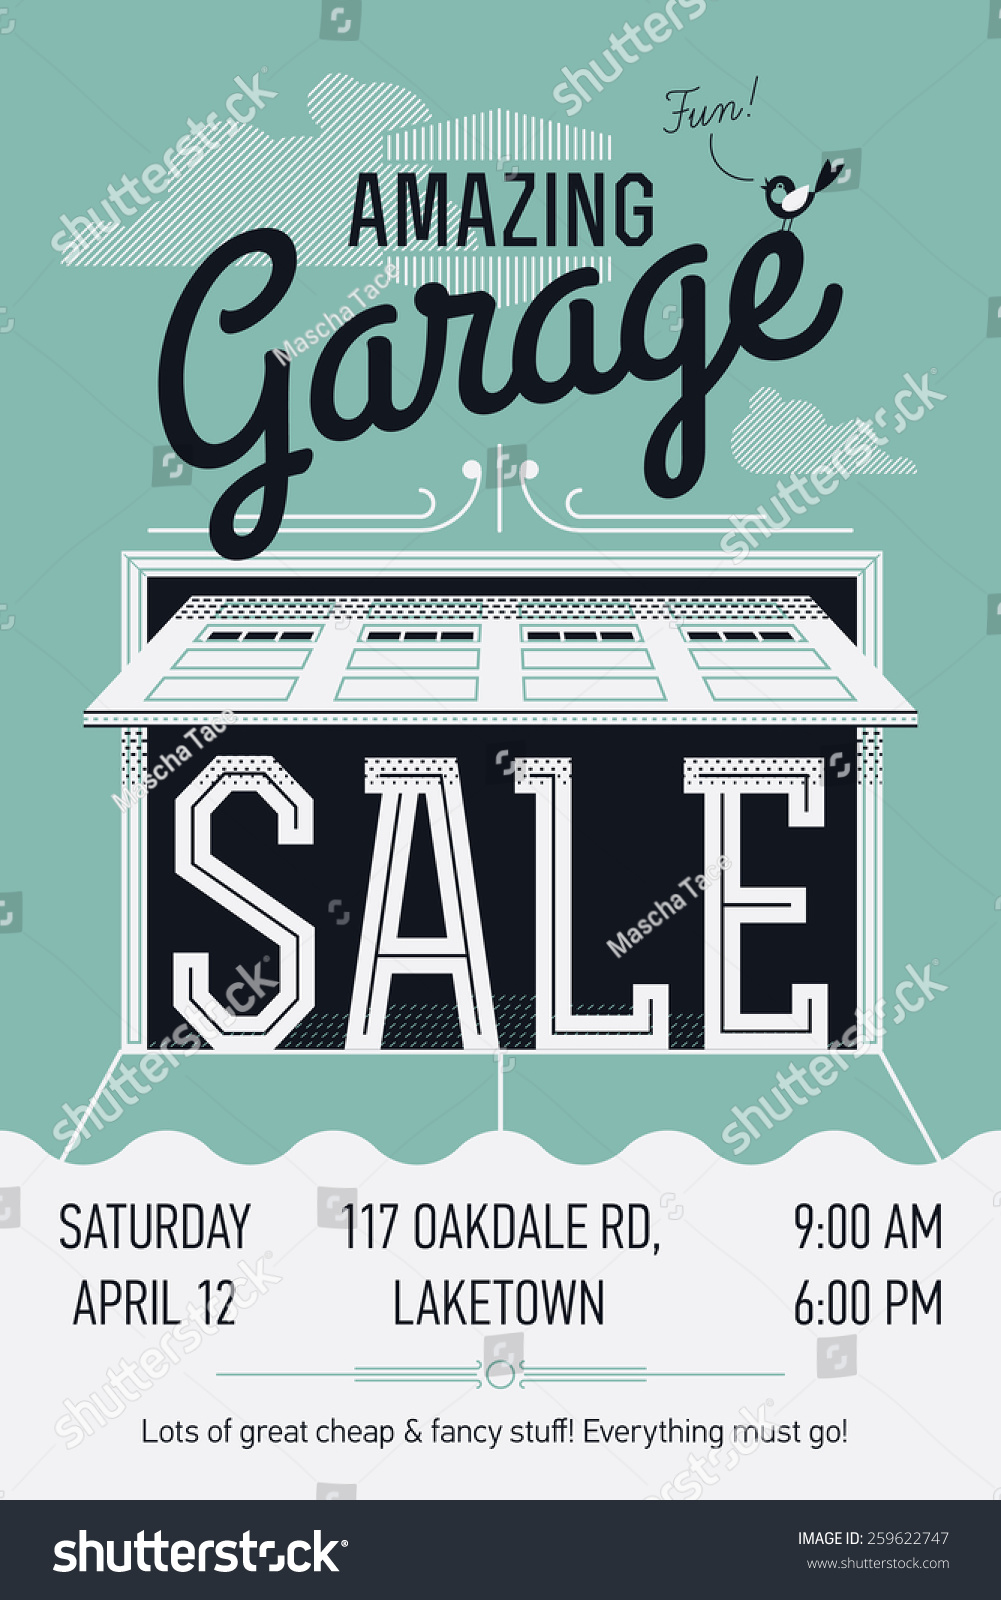 creative vector garage yard event stock vector  creative vector garage or yard event announcement printable poster or banner template